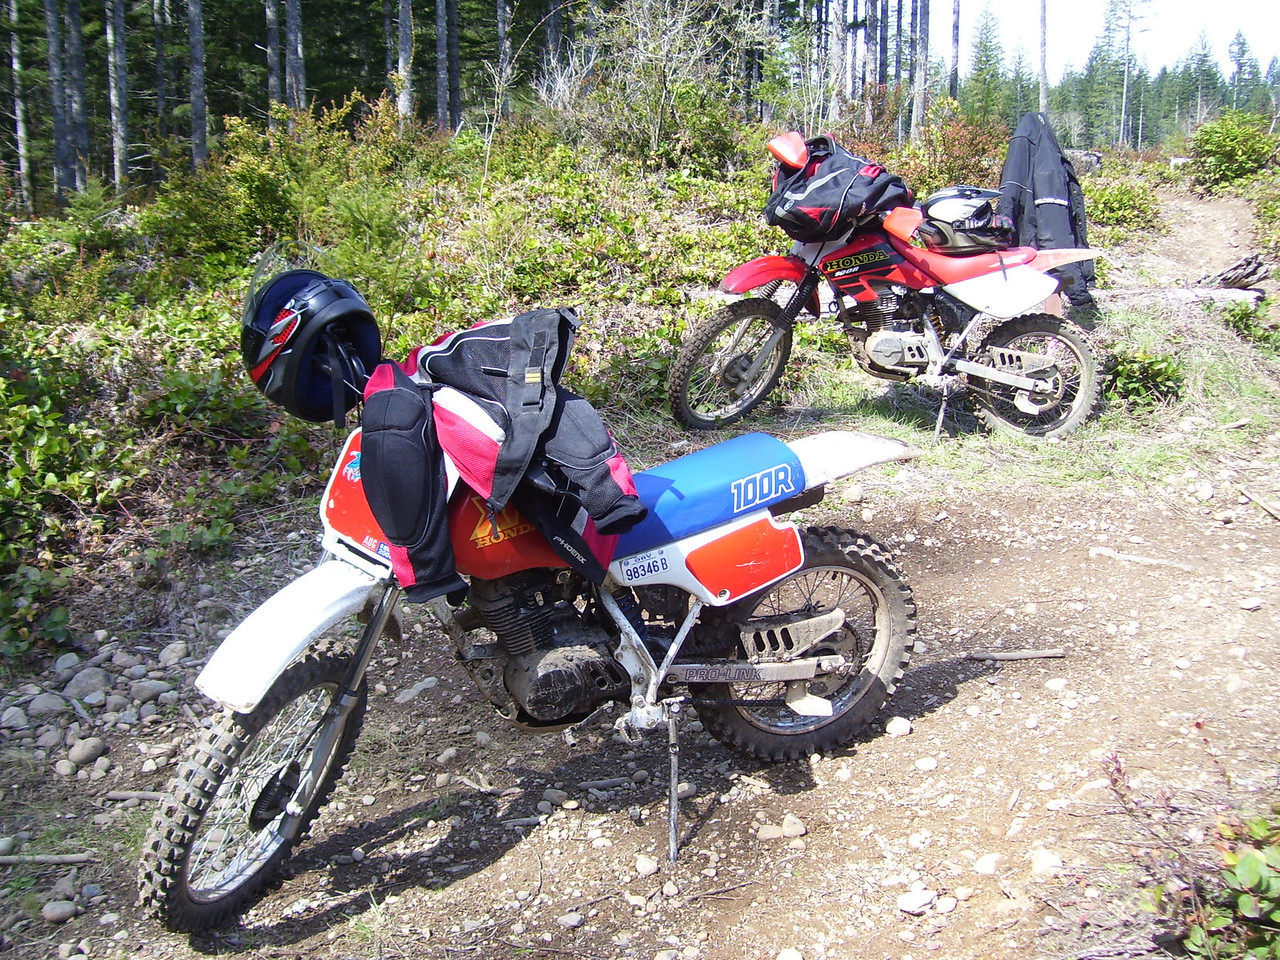 Two XR 100s, one from 1987, one from 2001.